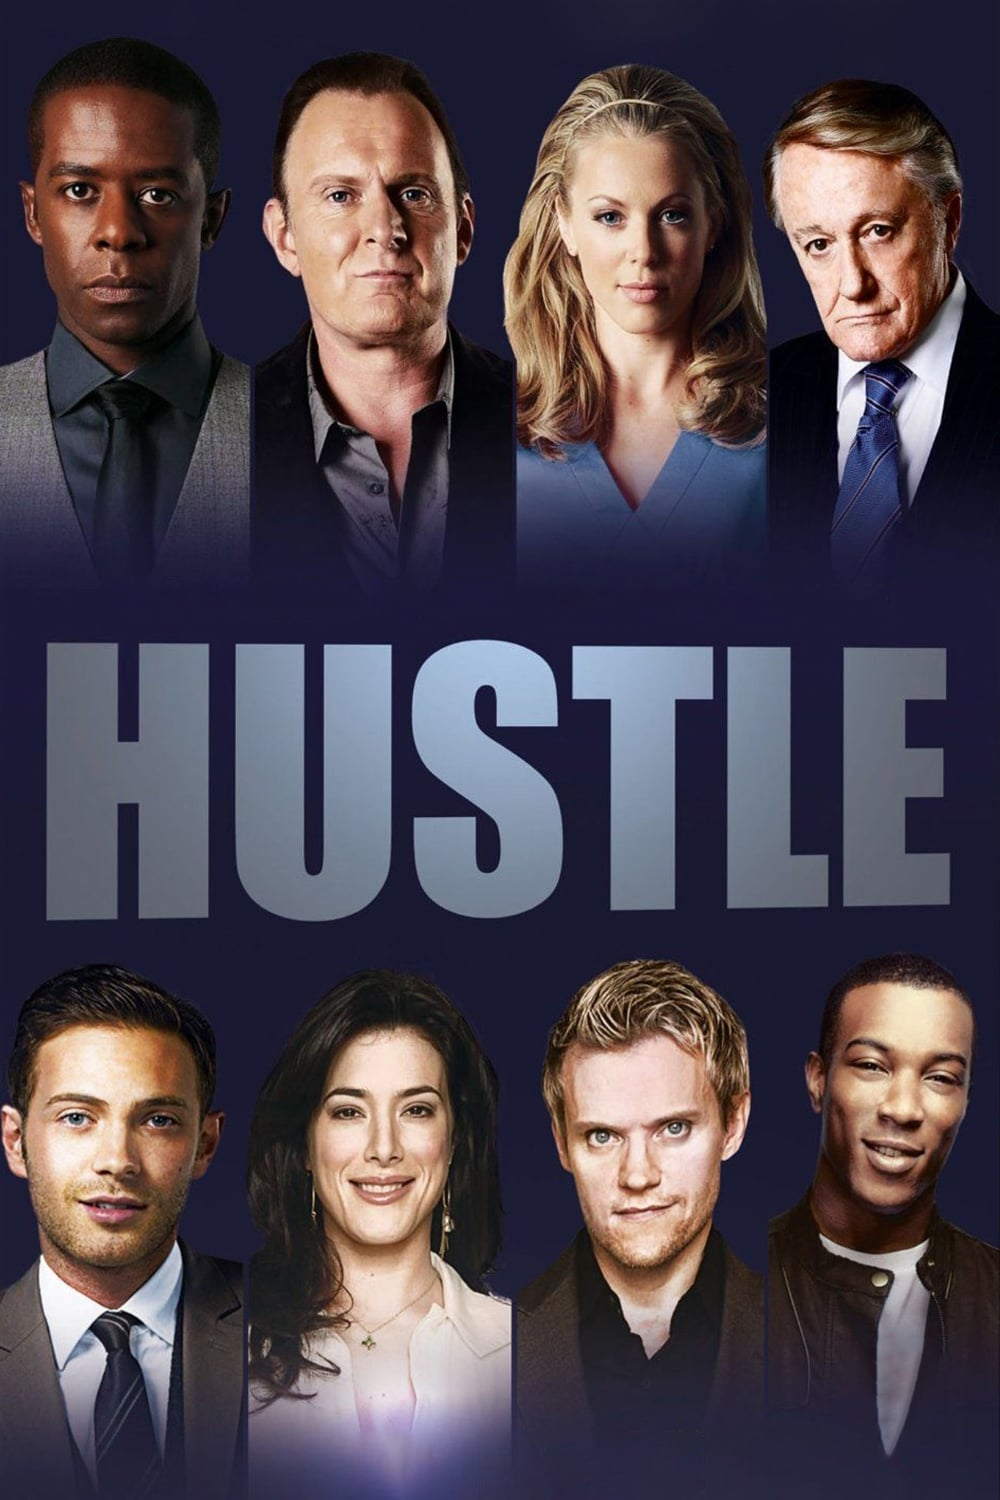 Hustle on FREECABLE TV